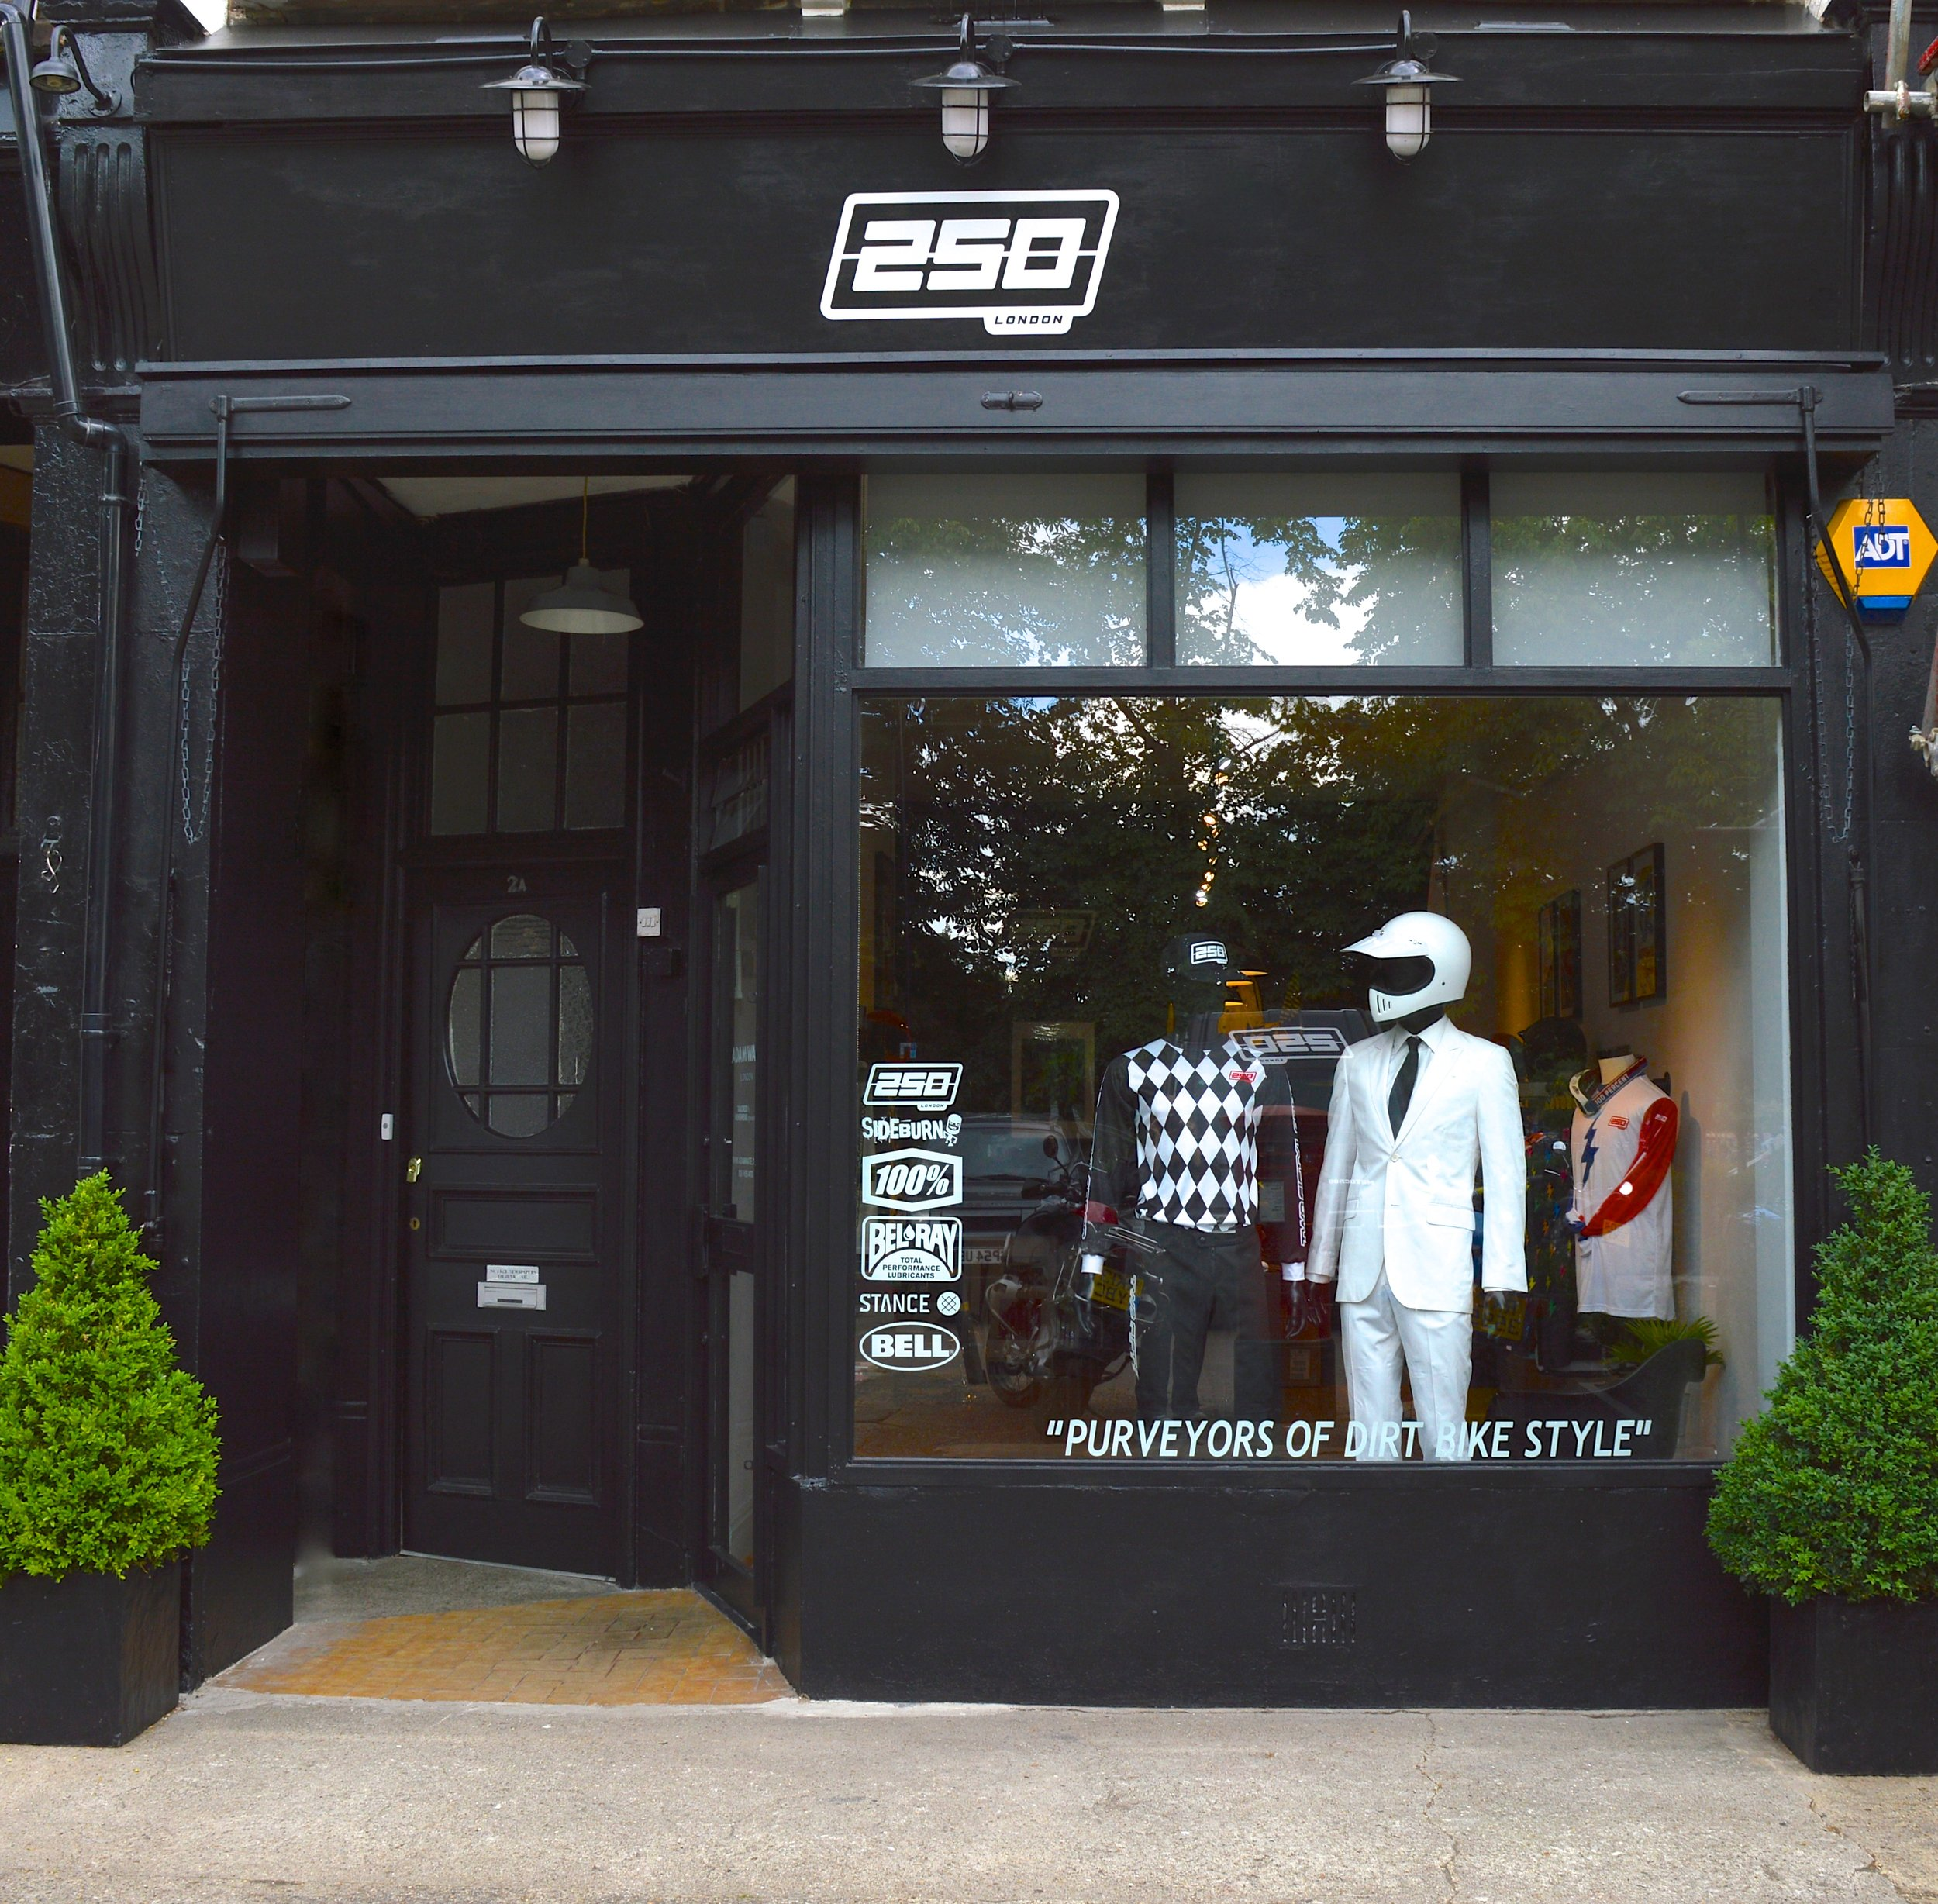 Find us at 2 Bedford Corner, South Parade, Chiswick, London, W4 1LD